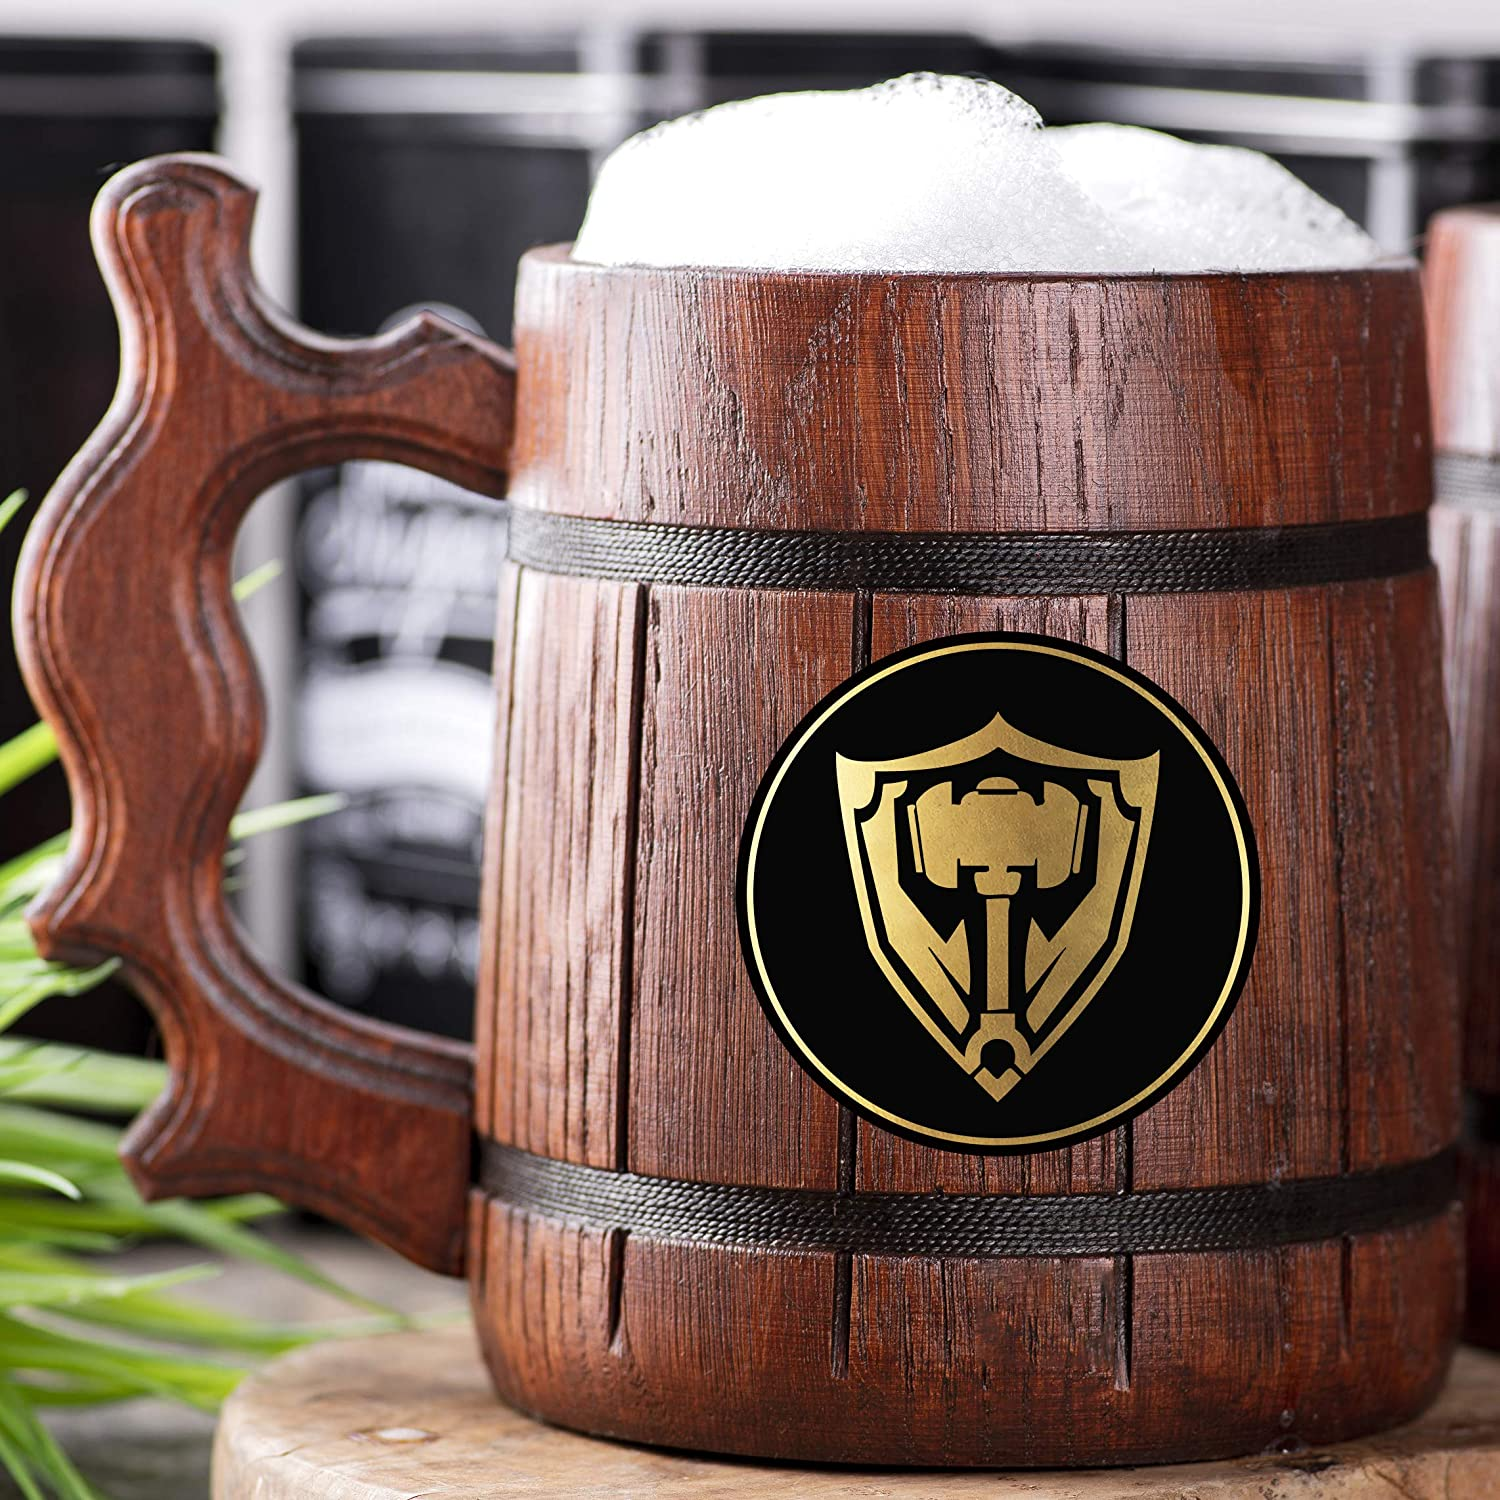 Award-winning store League of Legends Tank Beer Personalized San Diego Mall Wooden Mug. G